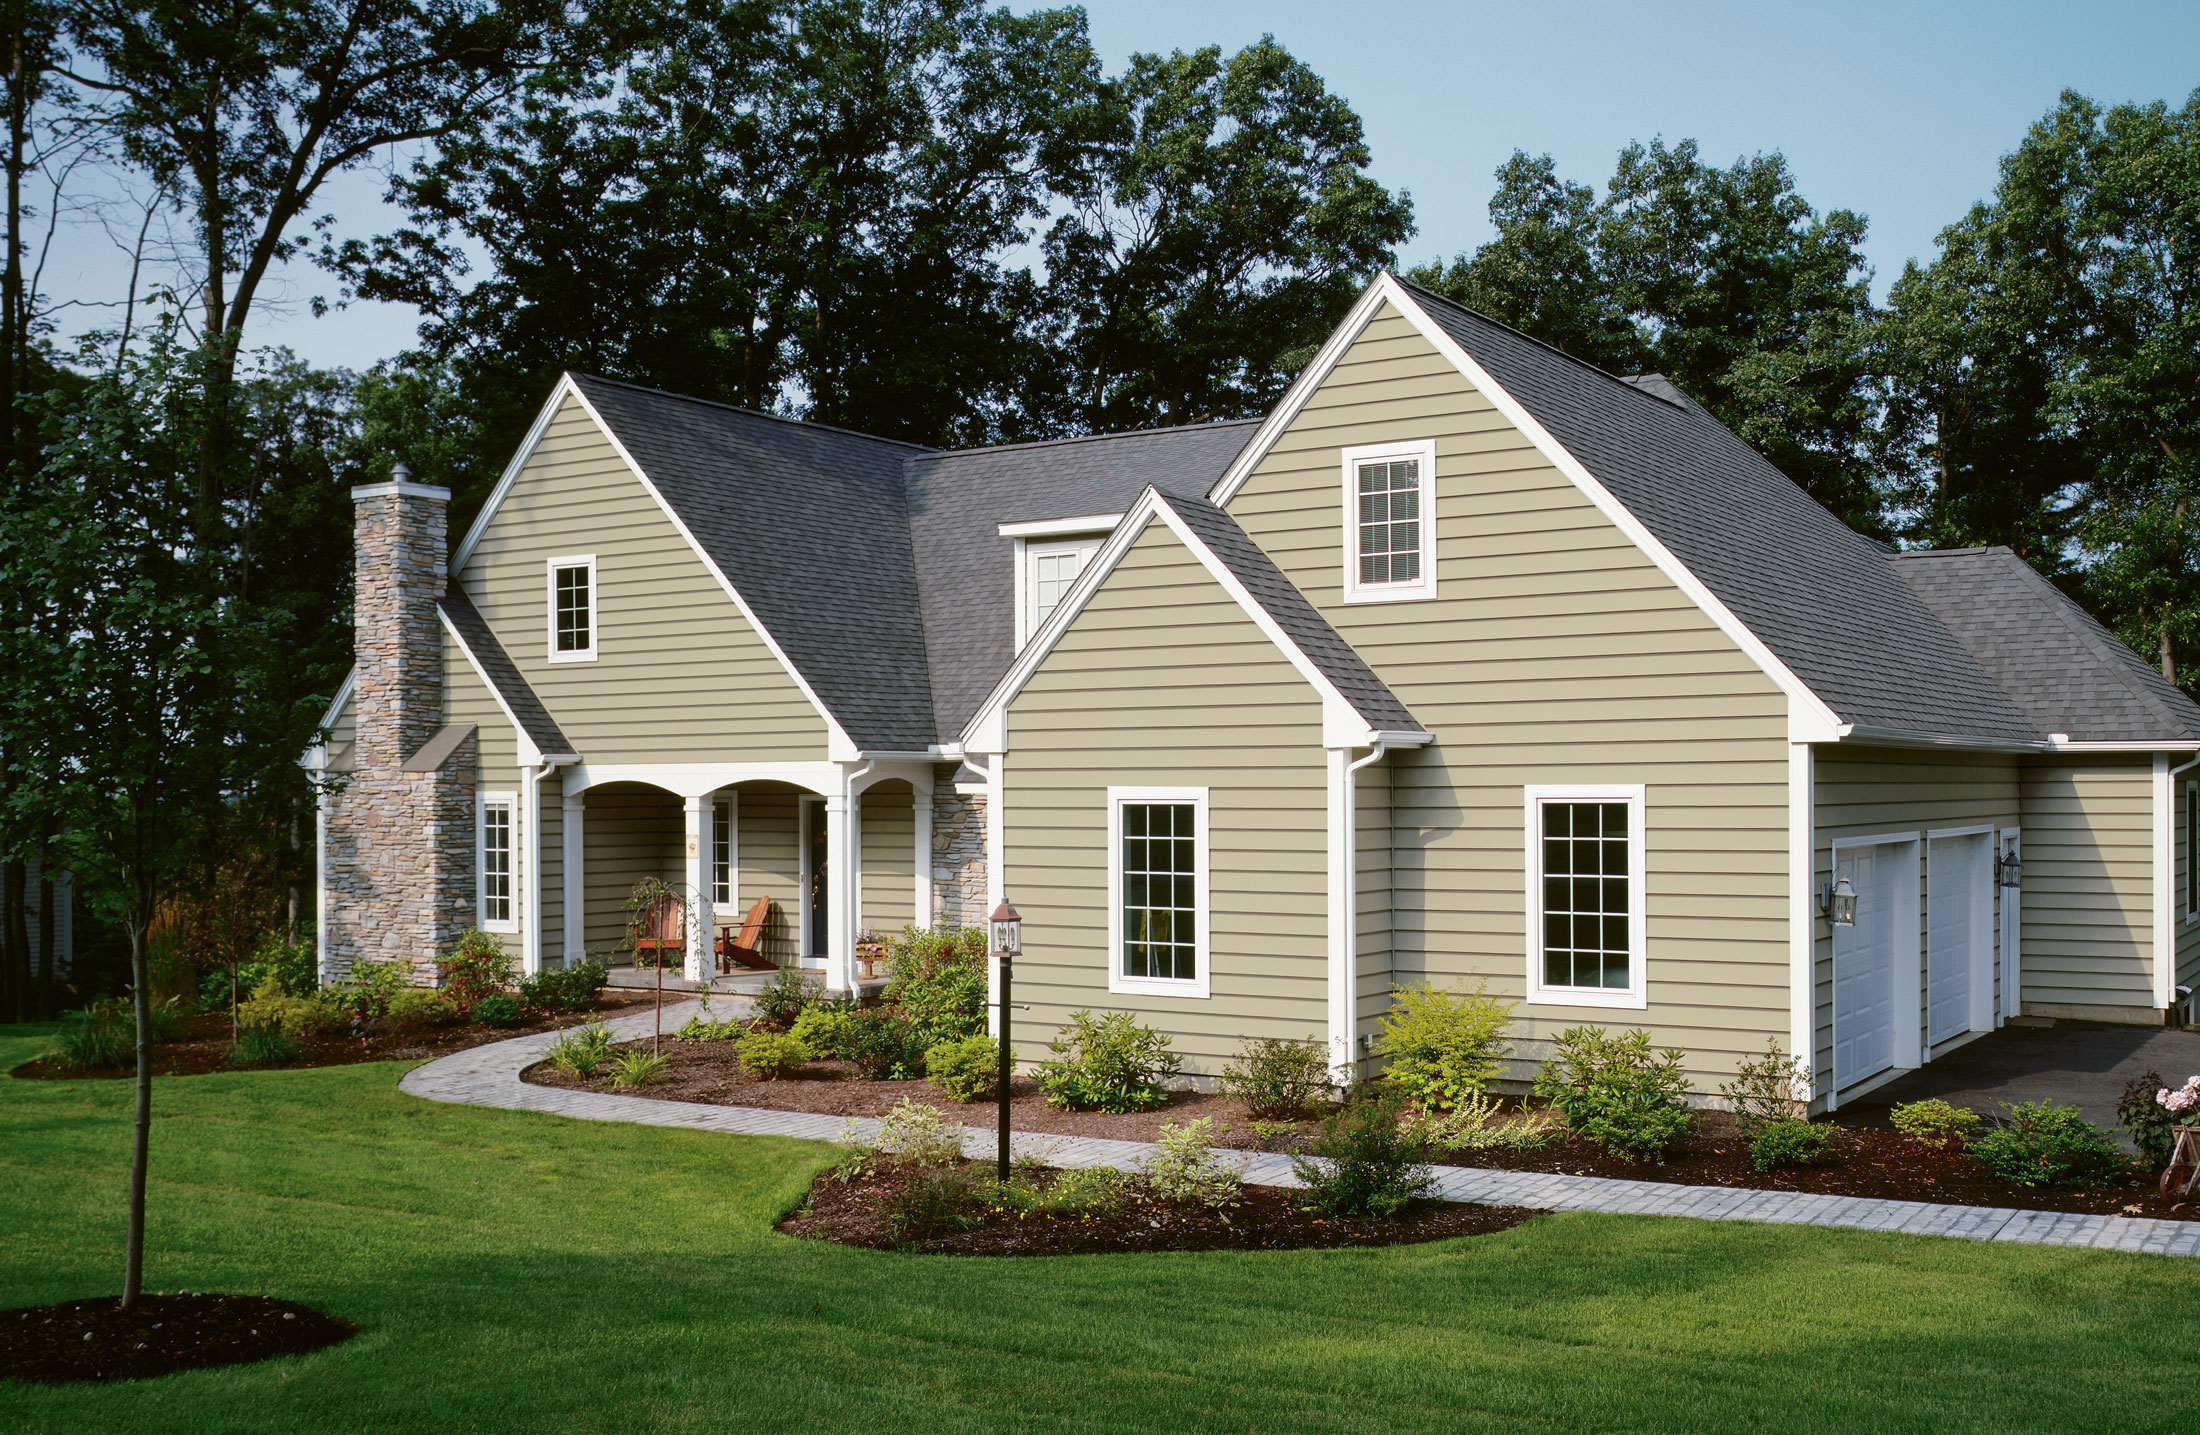 Hodges roofing does vinyl siding in winston salem nc for Best vinyl siding colors